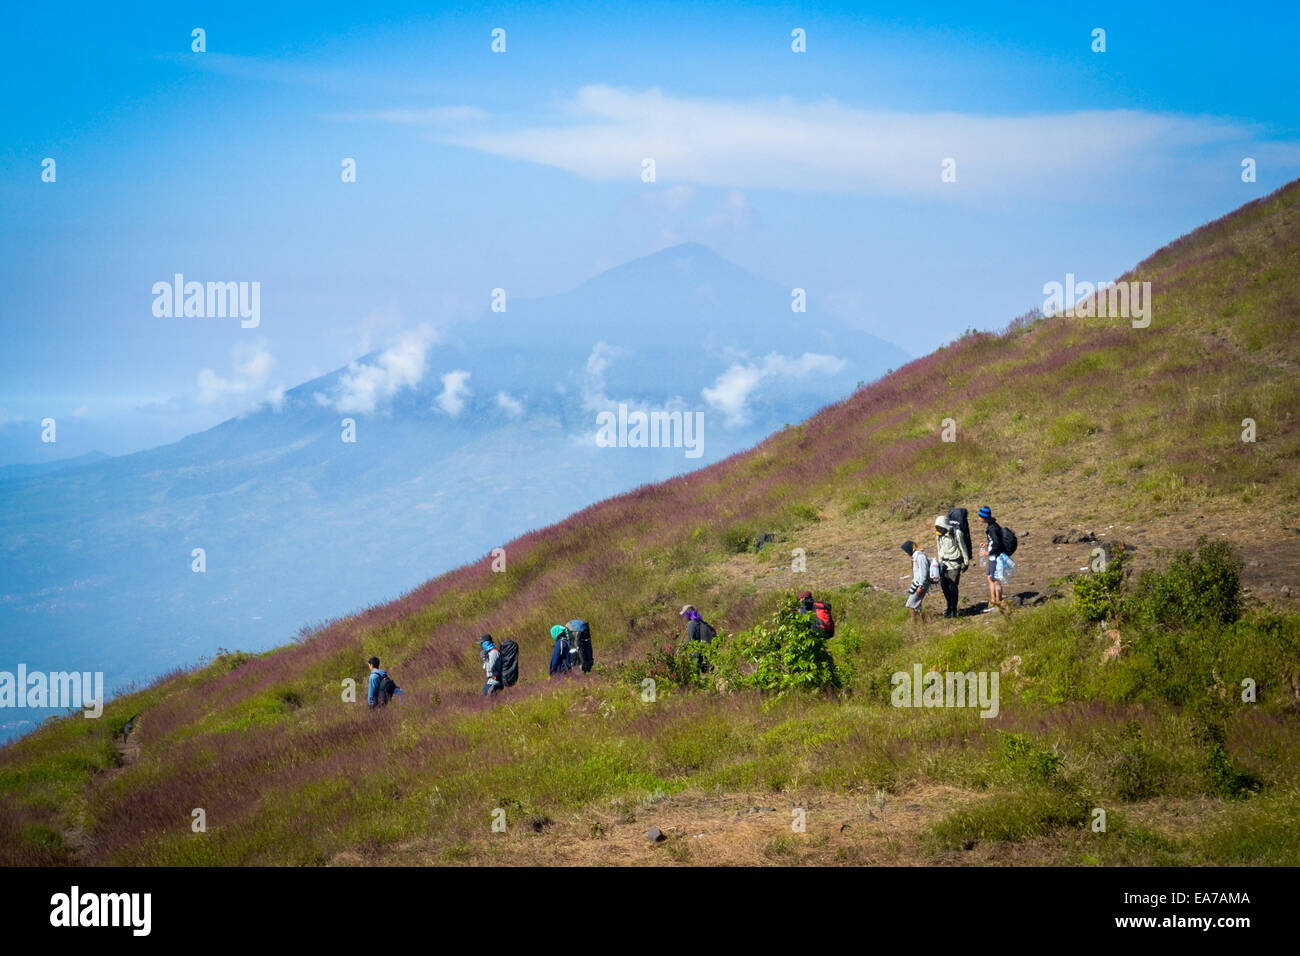 Local climbers on Mount Guntur, West Java. In the background is Mount Cikuray. Stock Photo